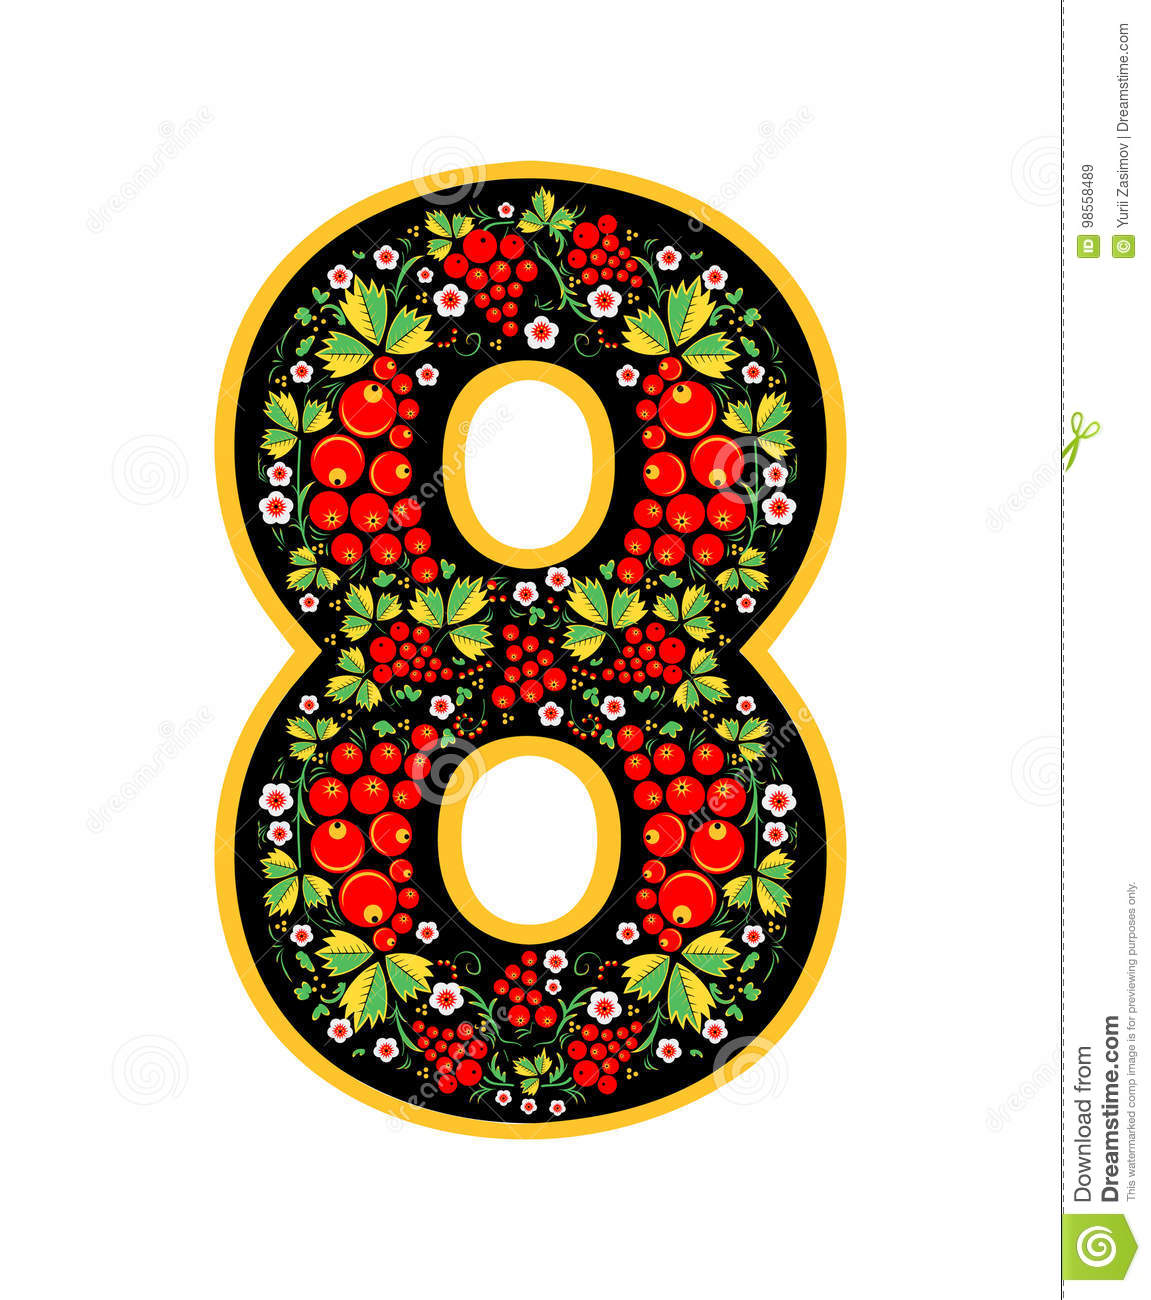 8 Digit Characterin The Russian Style  The Style Of